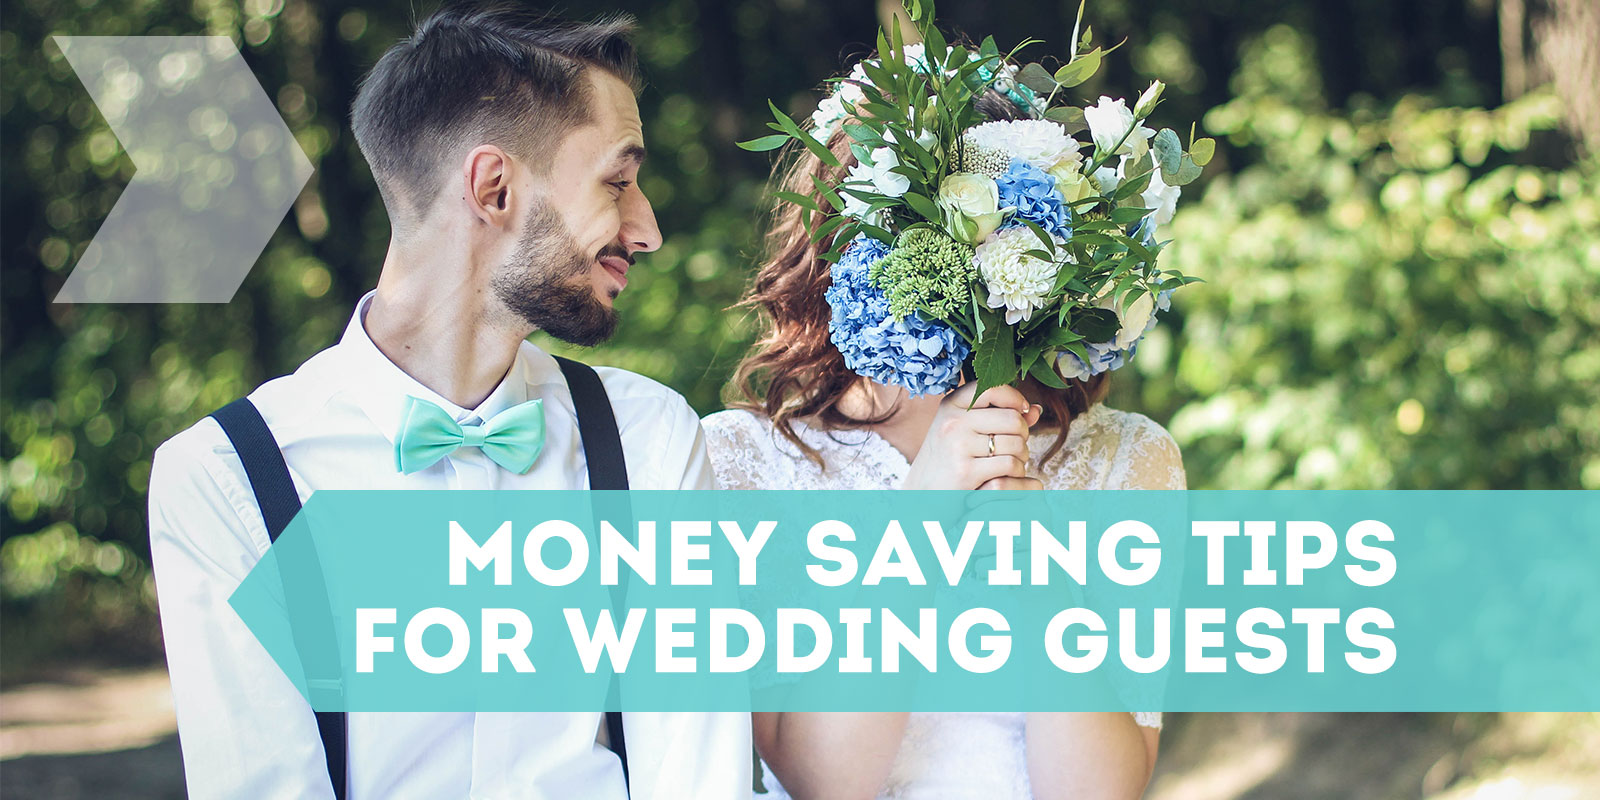 Money Saving Tips For Wedding Guests